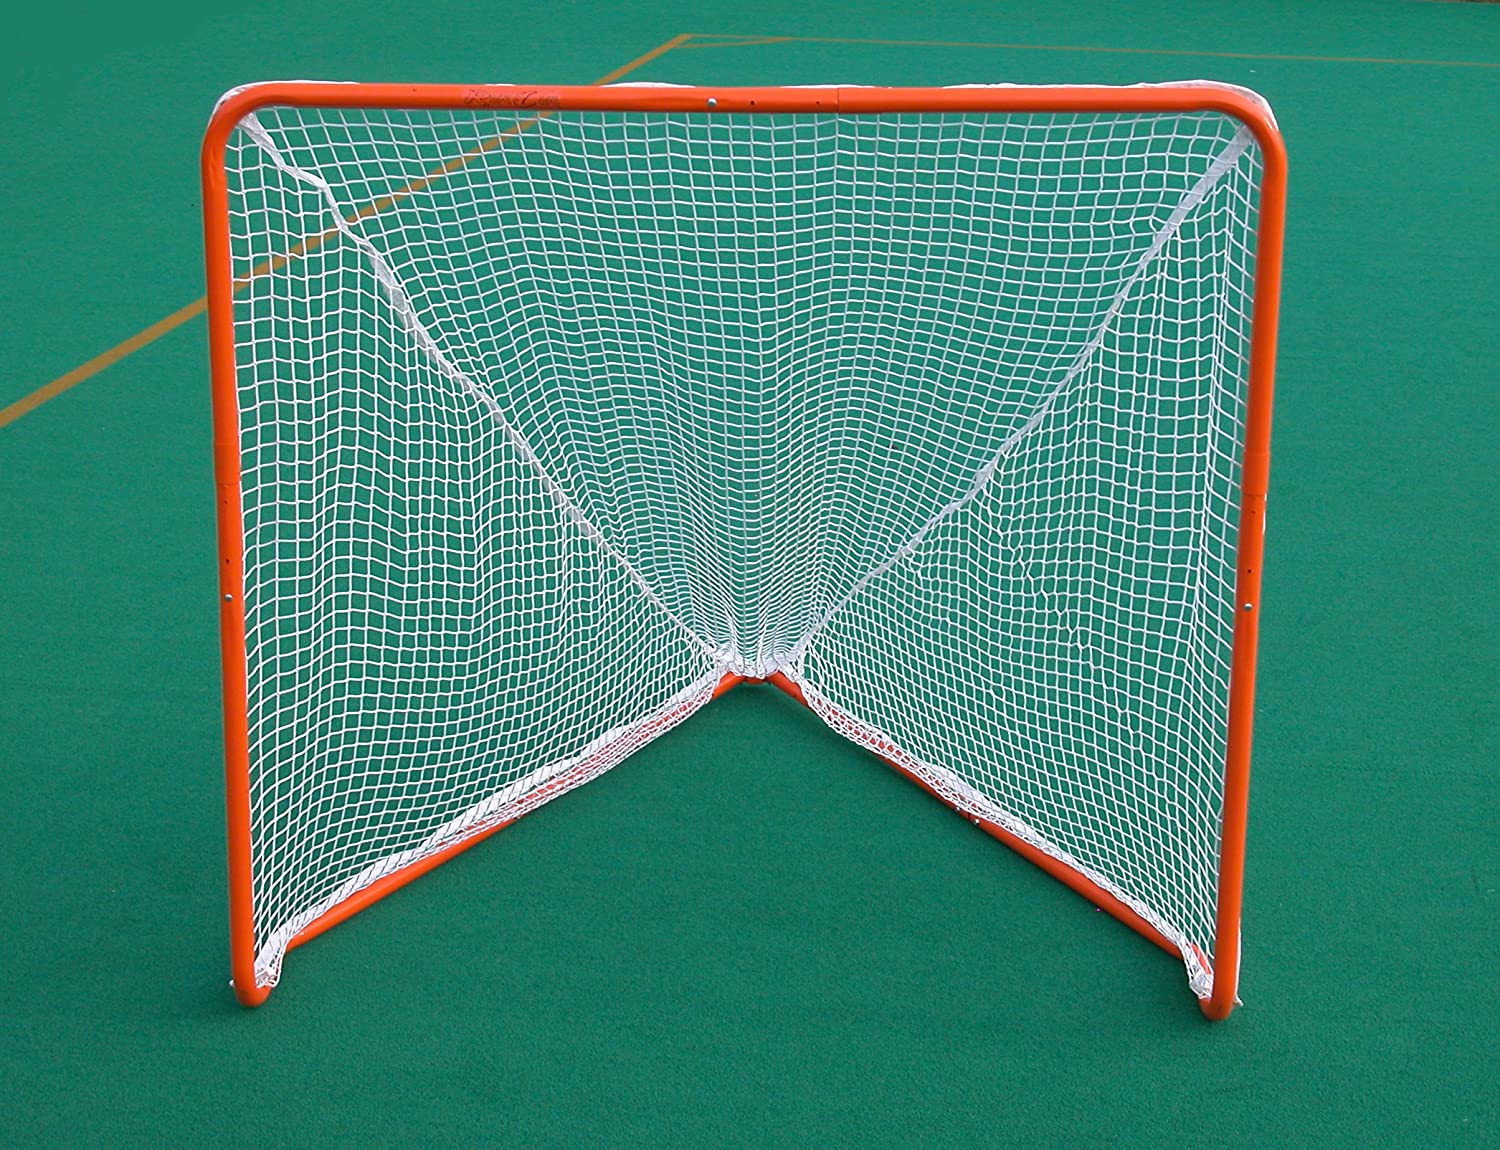 amazon com rage cage lax b100 collapsible lacrosse goal with pre